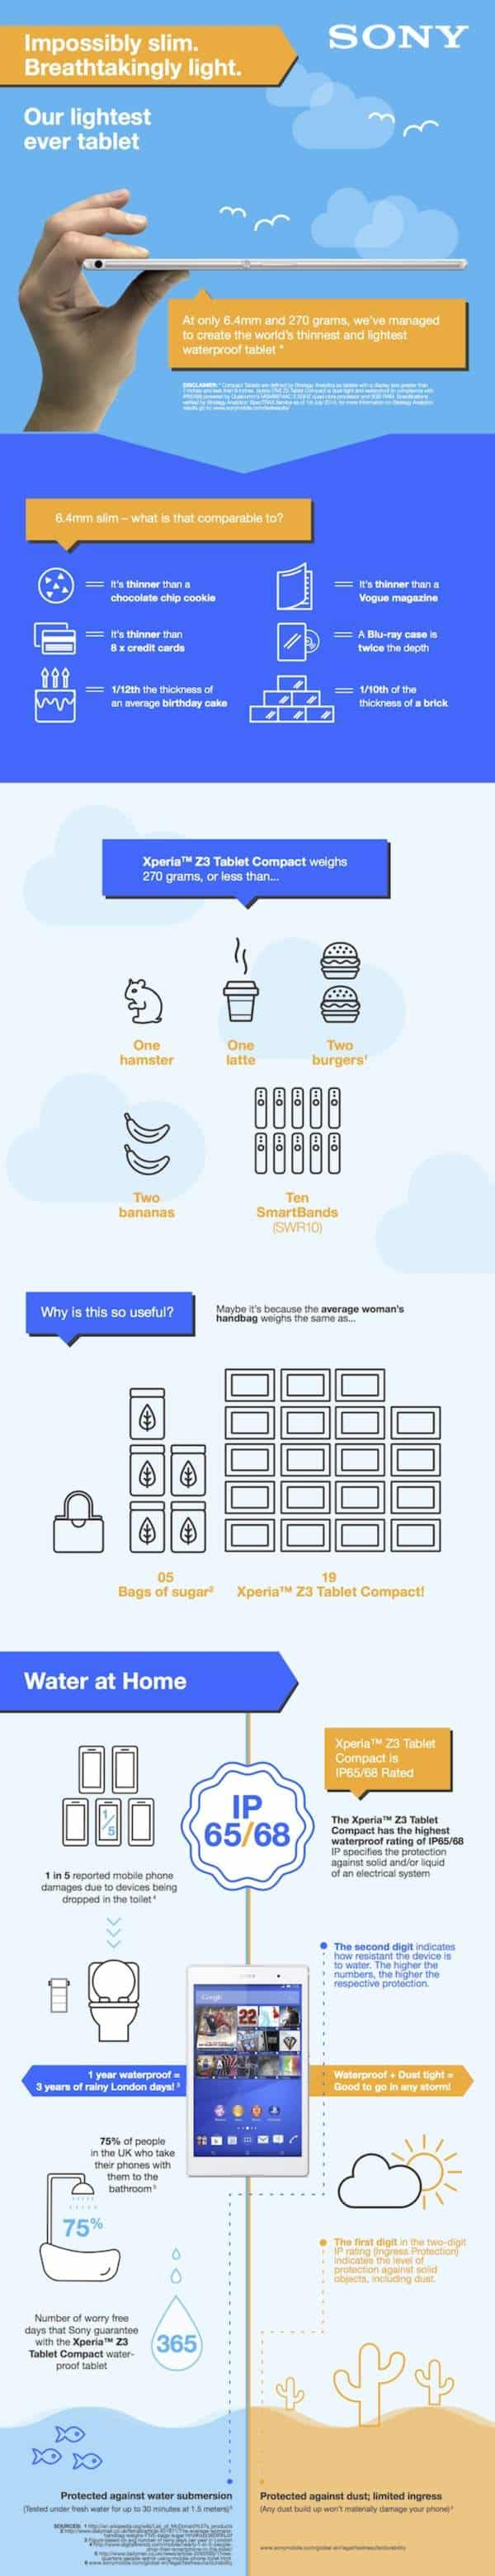 Xperia-Z3-Tablet-Compact-Infographic2